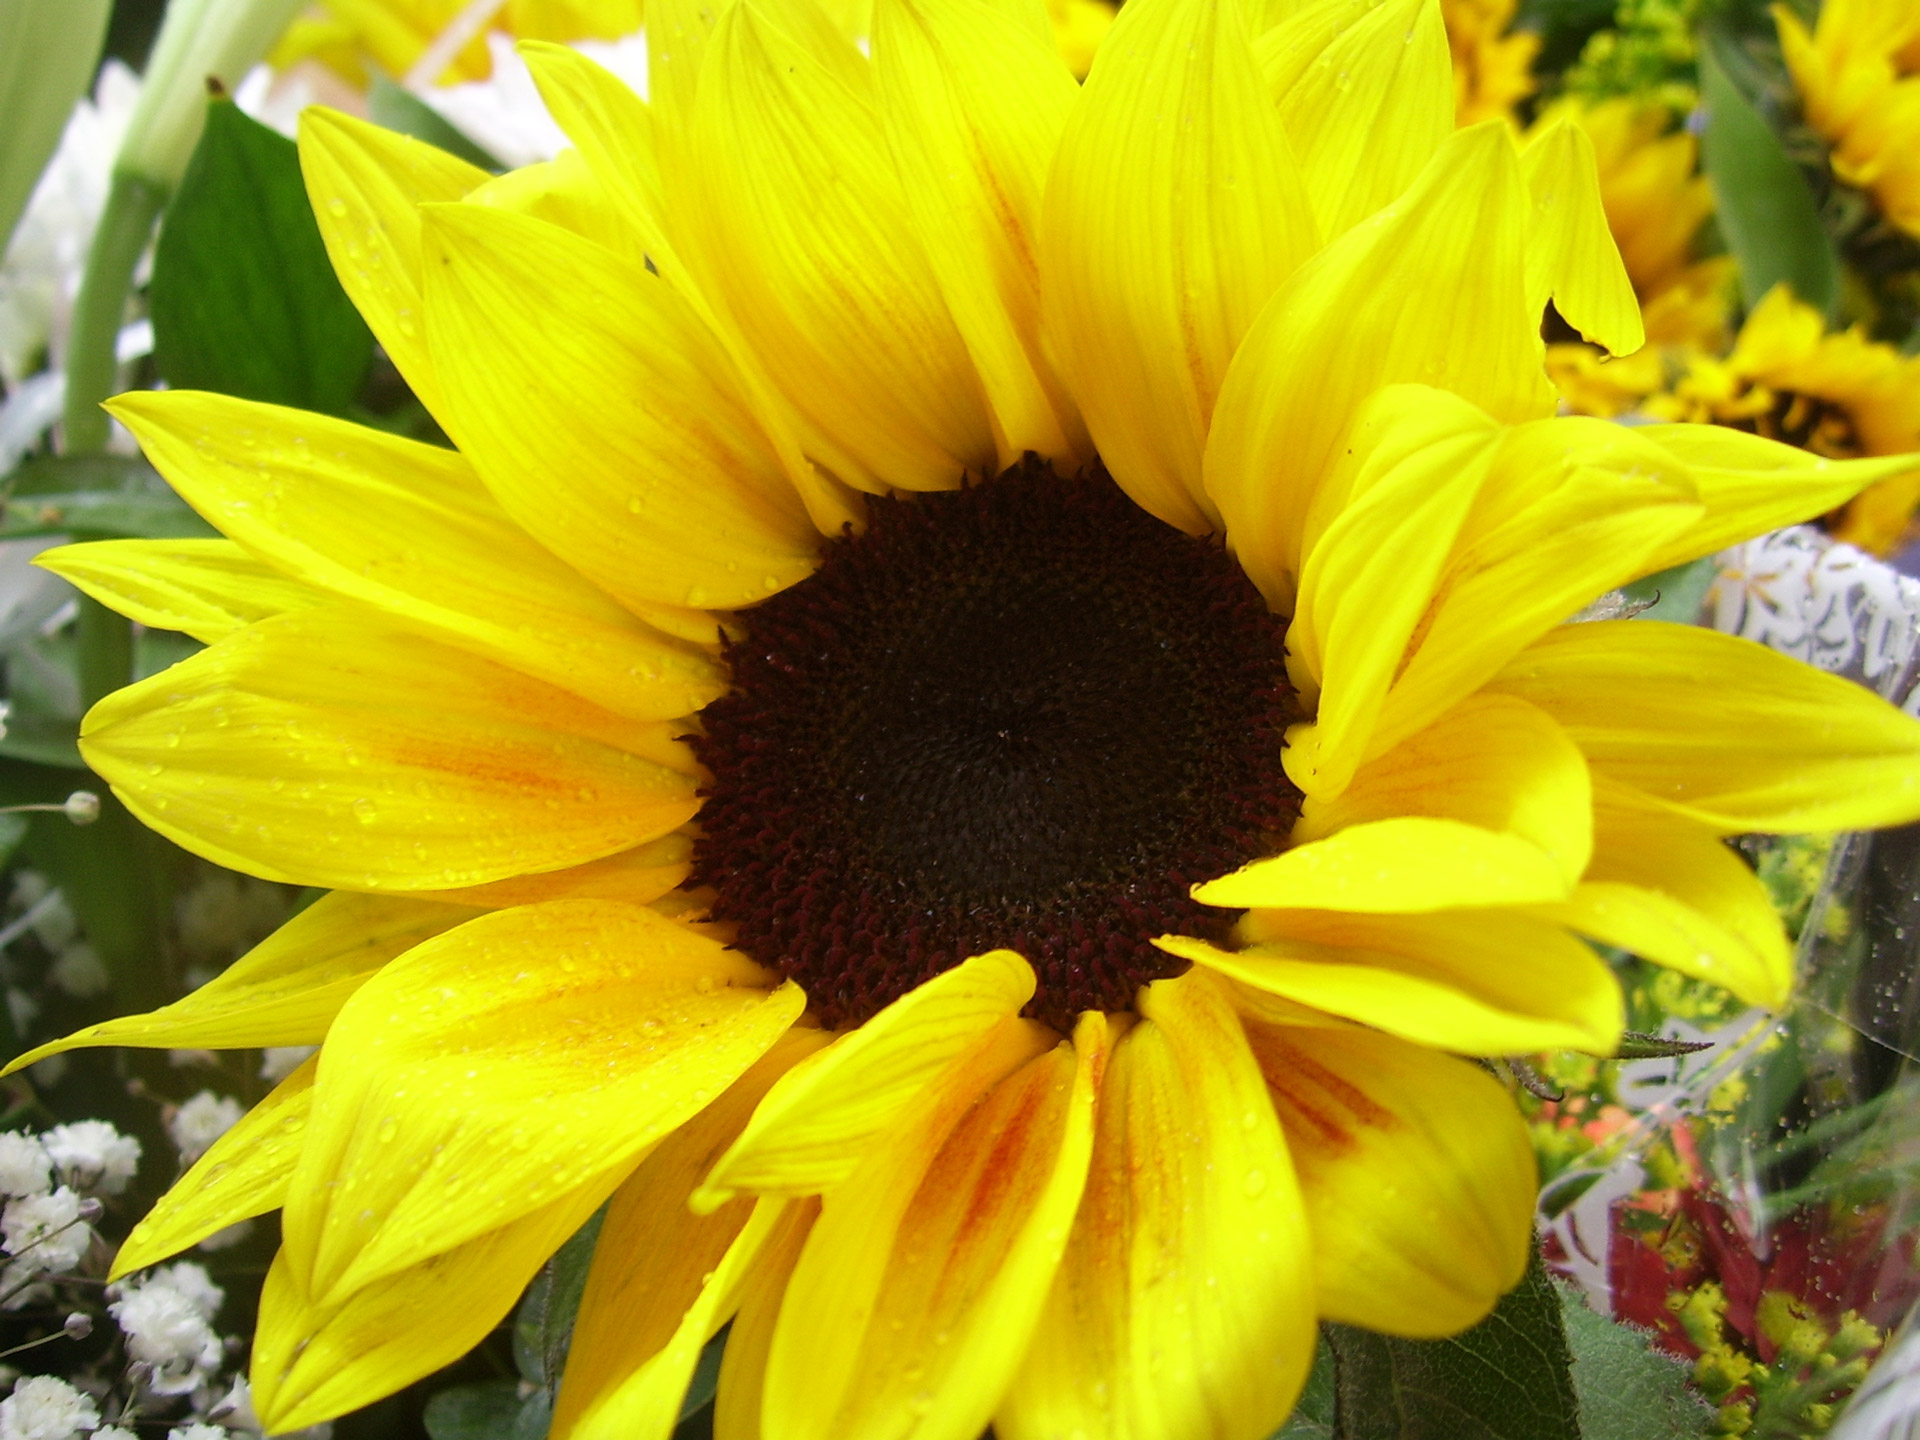 Yellow Sunflower Free Stock Photo - Public Domain Pictures